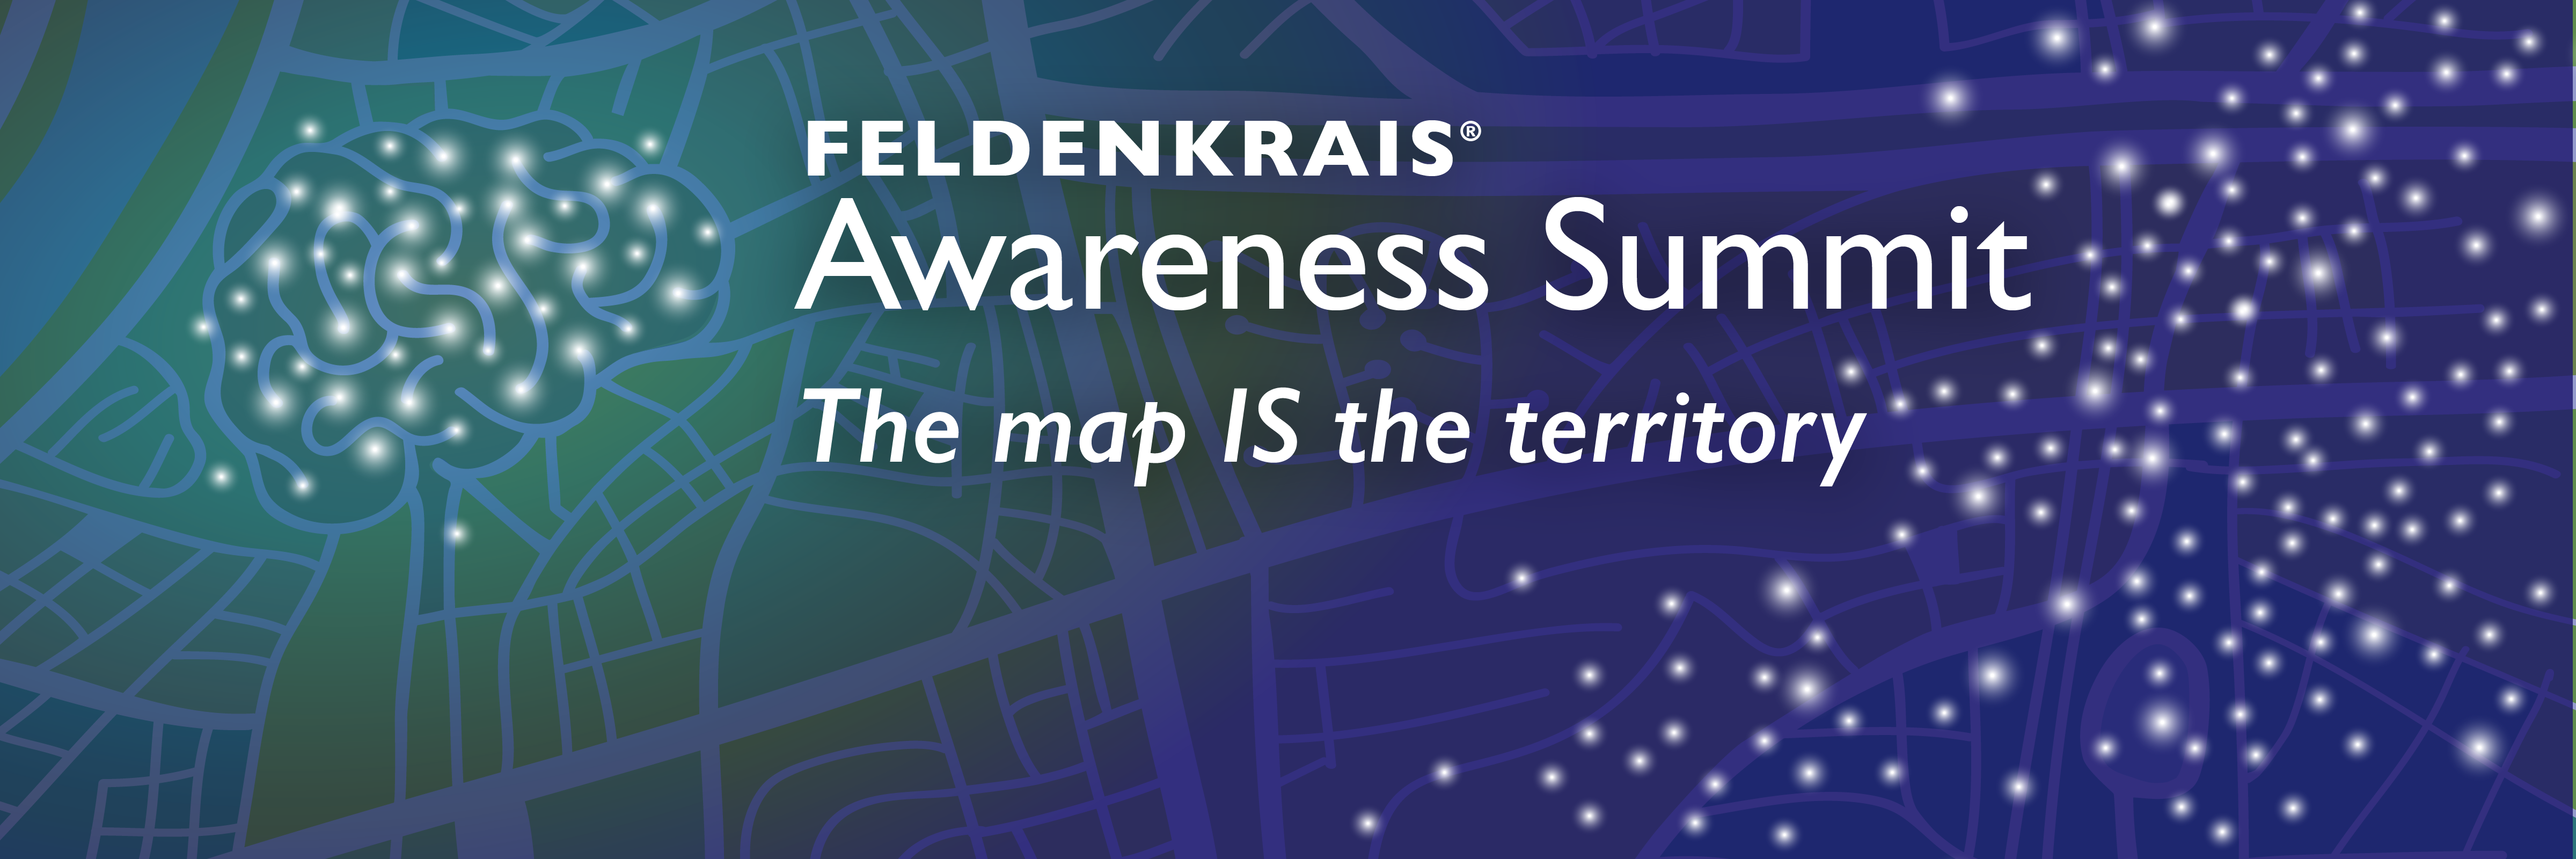 Summit Feldenkrais 2019